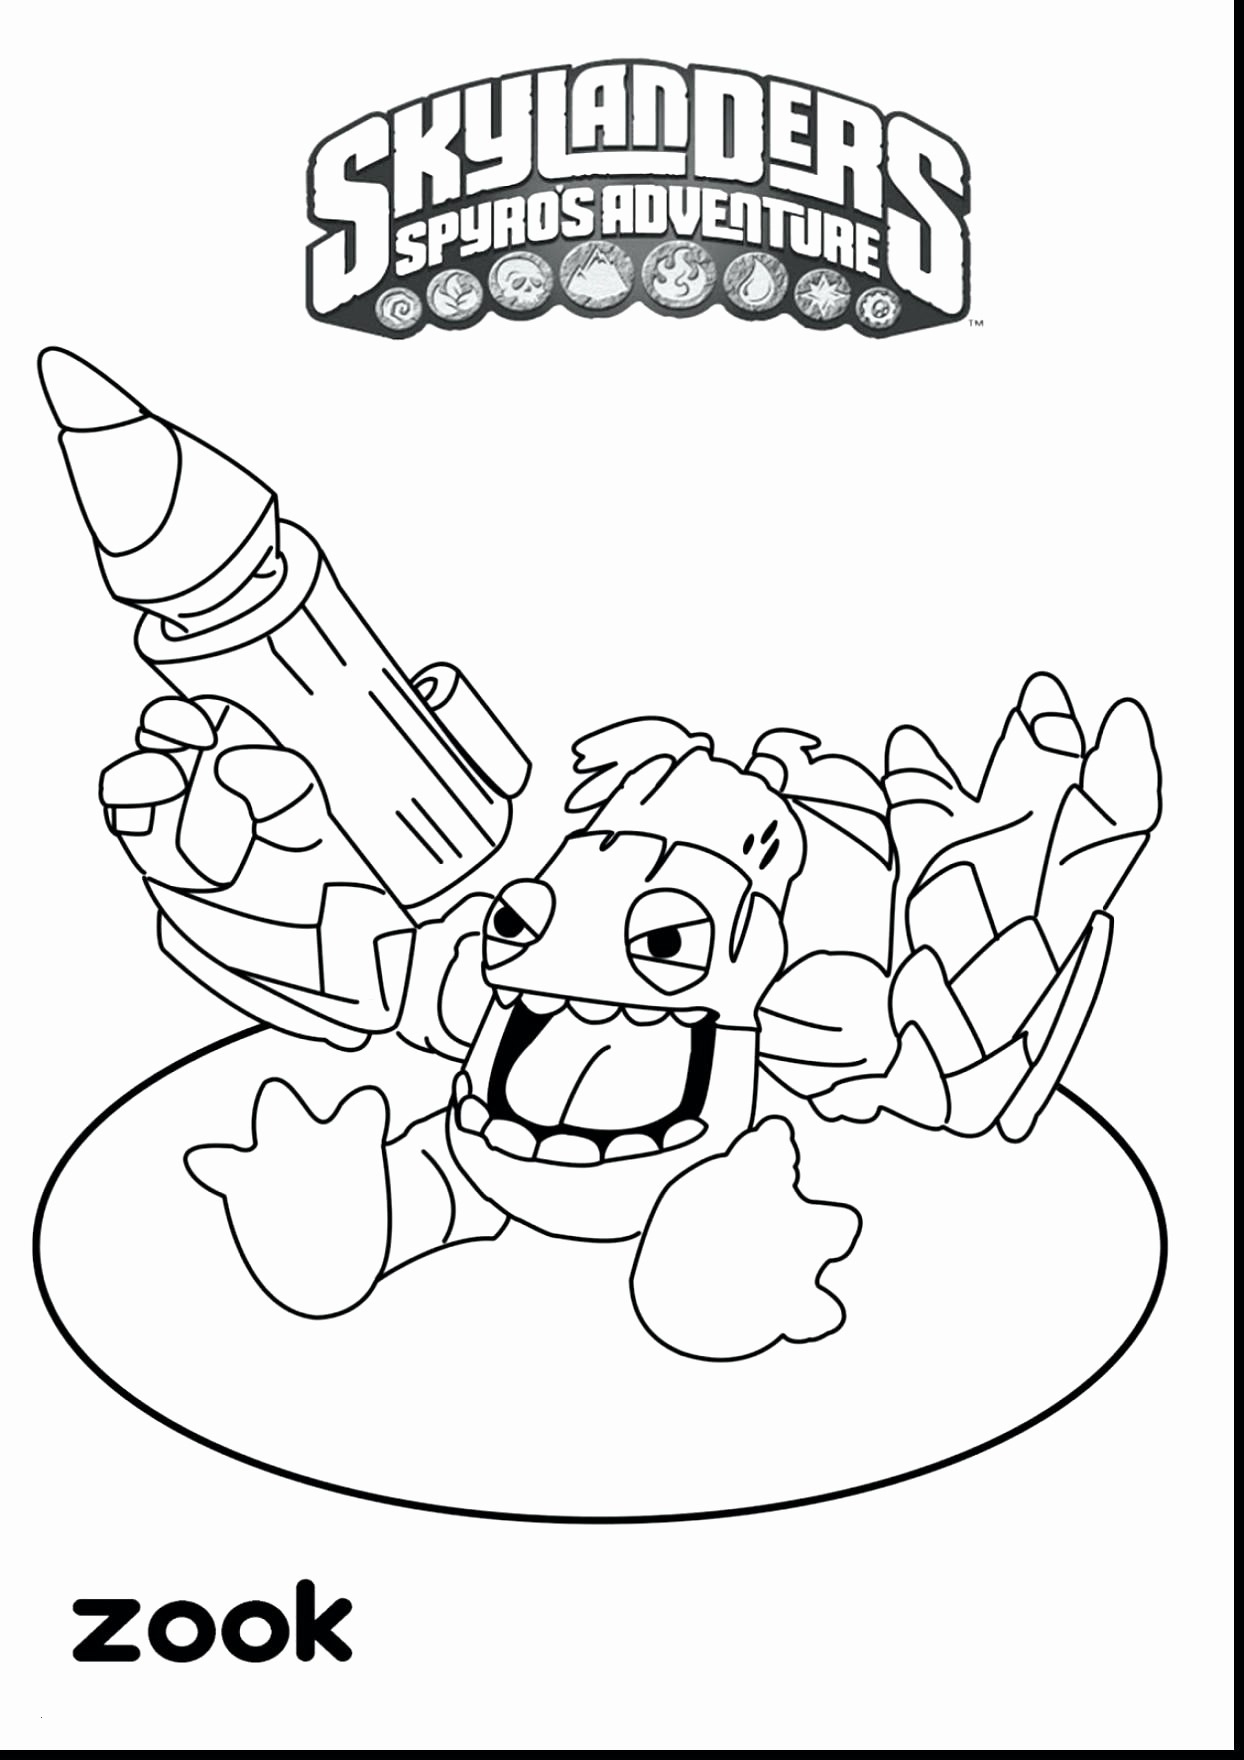 Teamwork Coloring Pages Printable